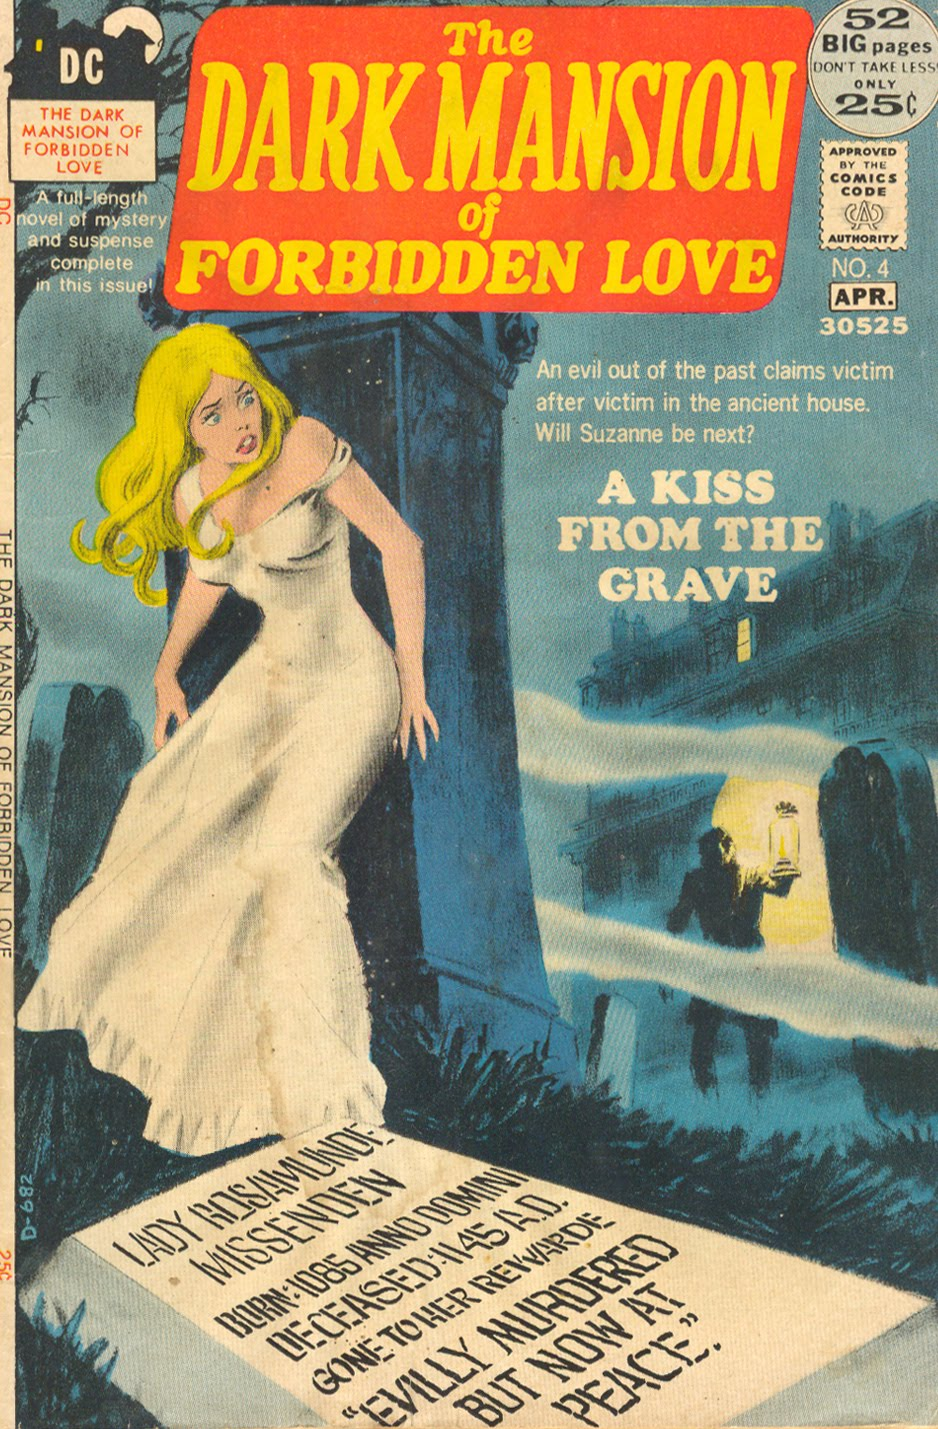 Gothic Romance comics were short-lived in the 1970s but are making quite the comeback!